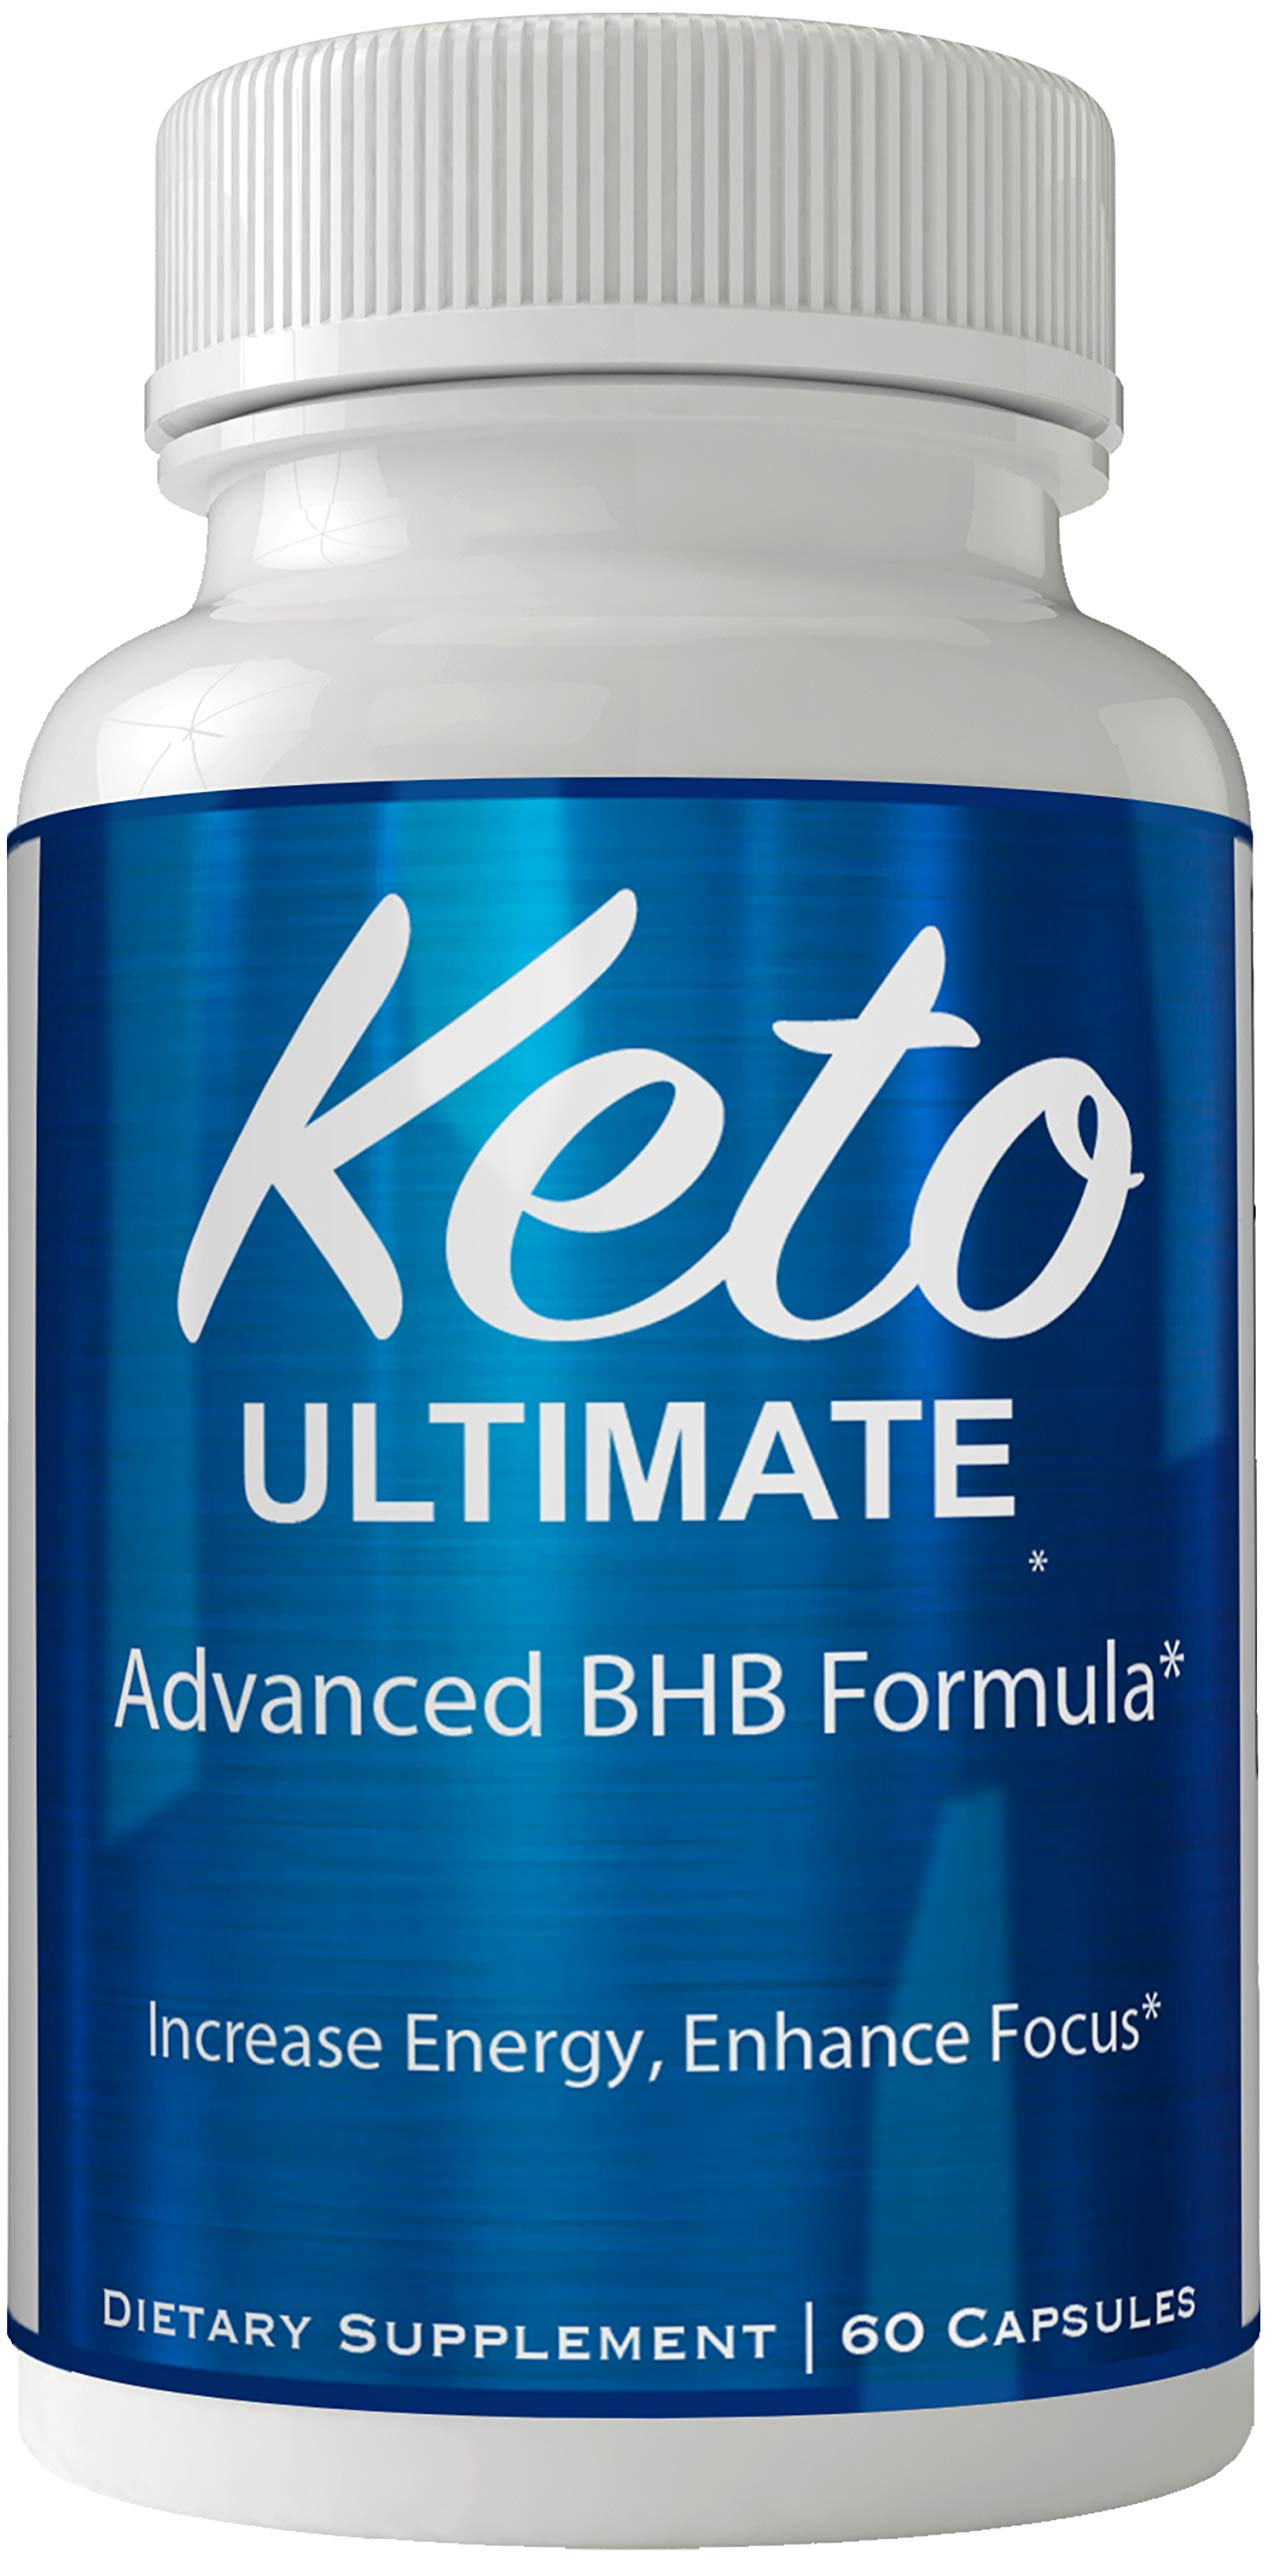 Keto Ultimate Diet Pills Advance Weight Loss Supplement Appetite Suppressant Natural Ketogenic 800 mg Formula with BHB Salts Ketone Diet Capsules to Boost Metabolism, Energy and Focus ...